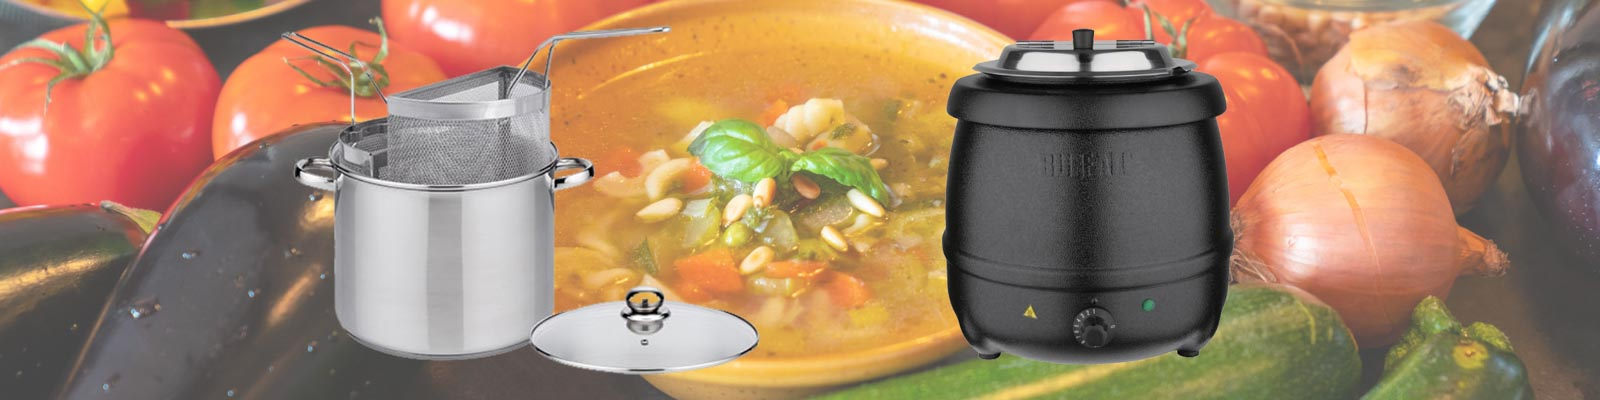 Banner pasta curry soep